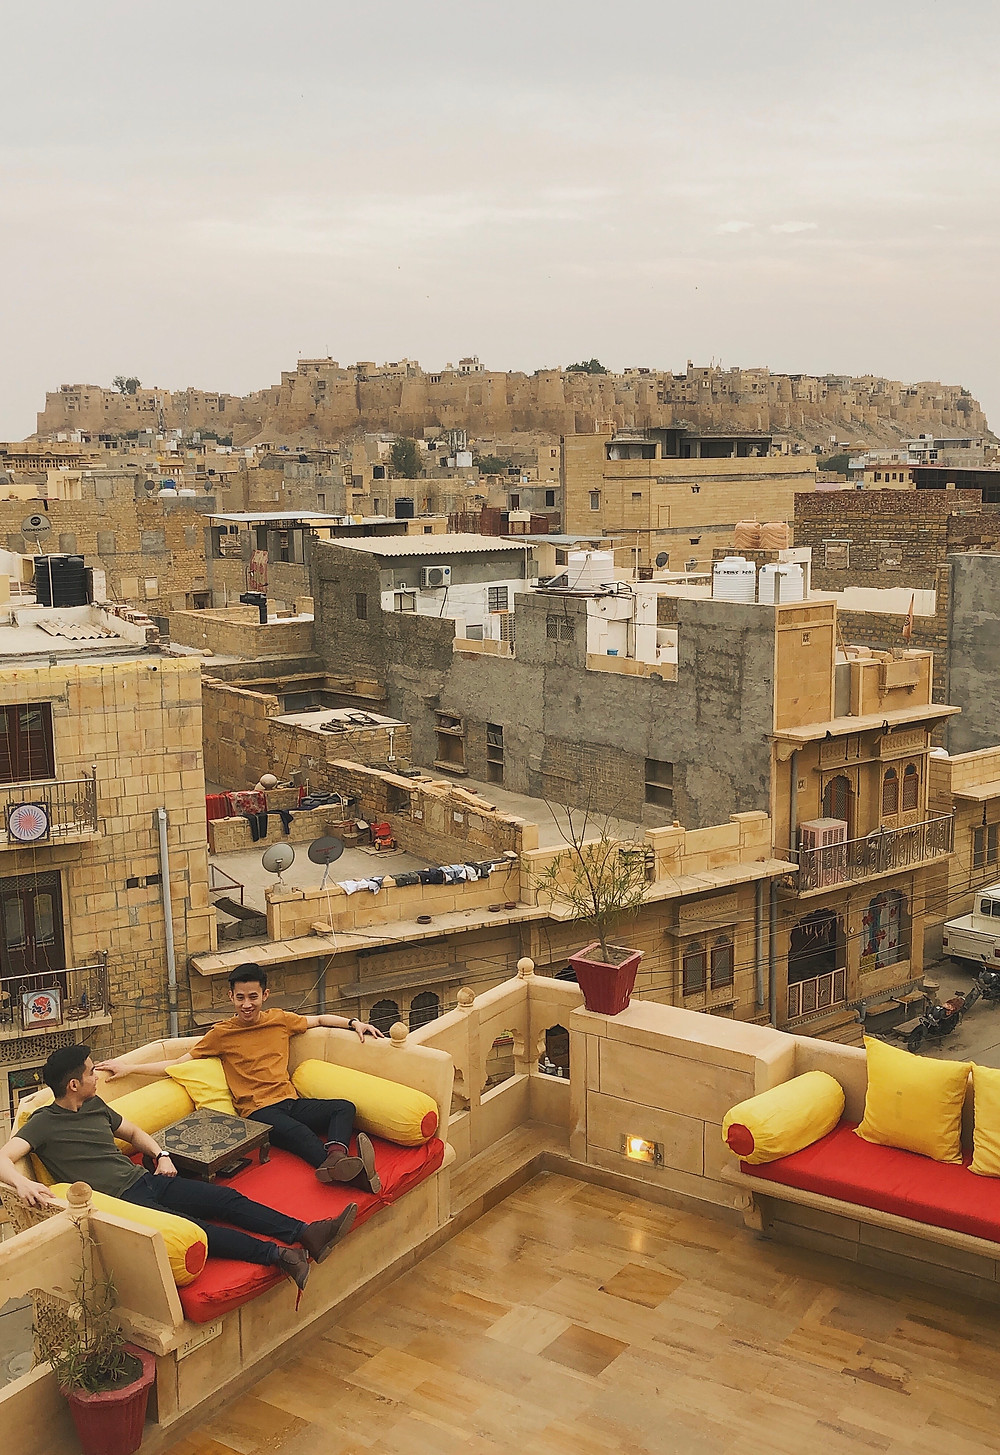 Jaisalmer, the Golden City of Rajasthan